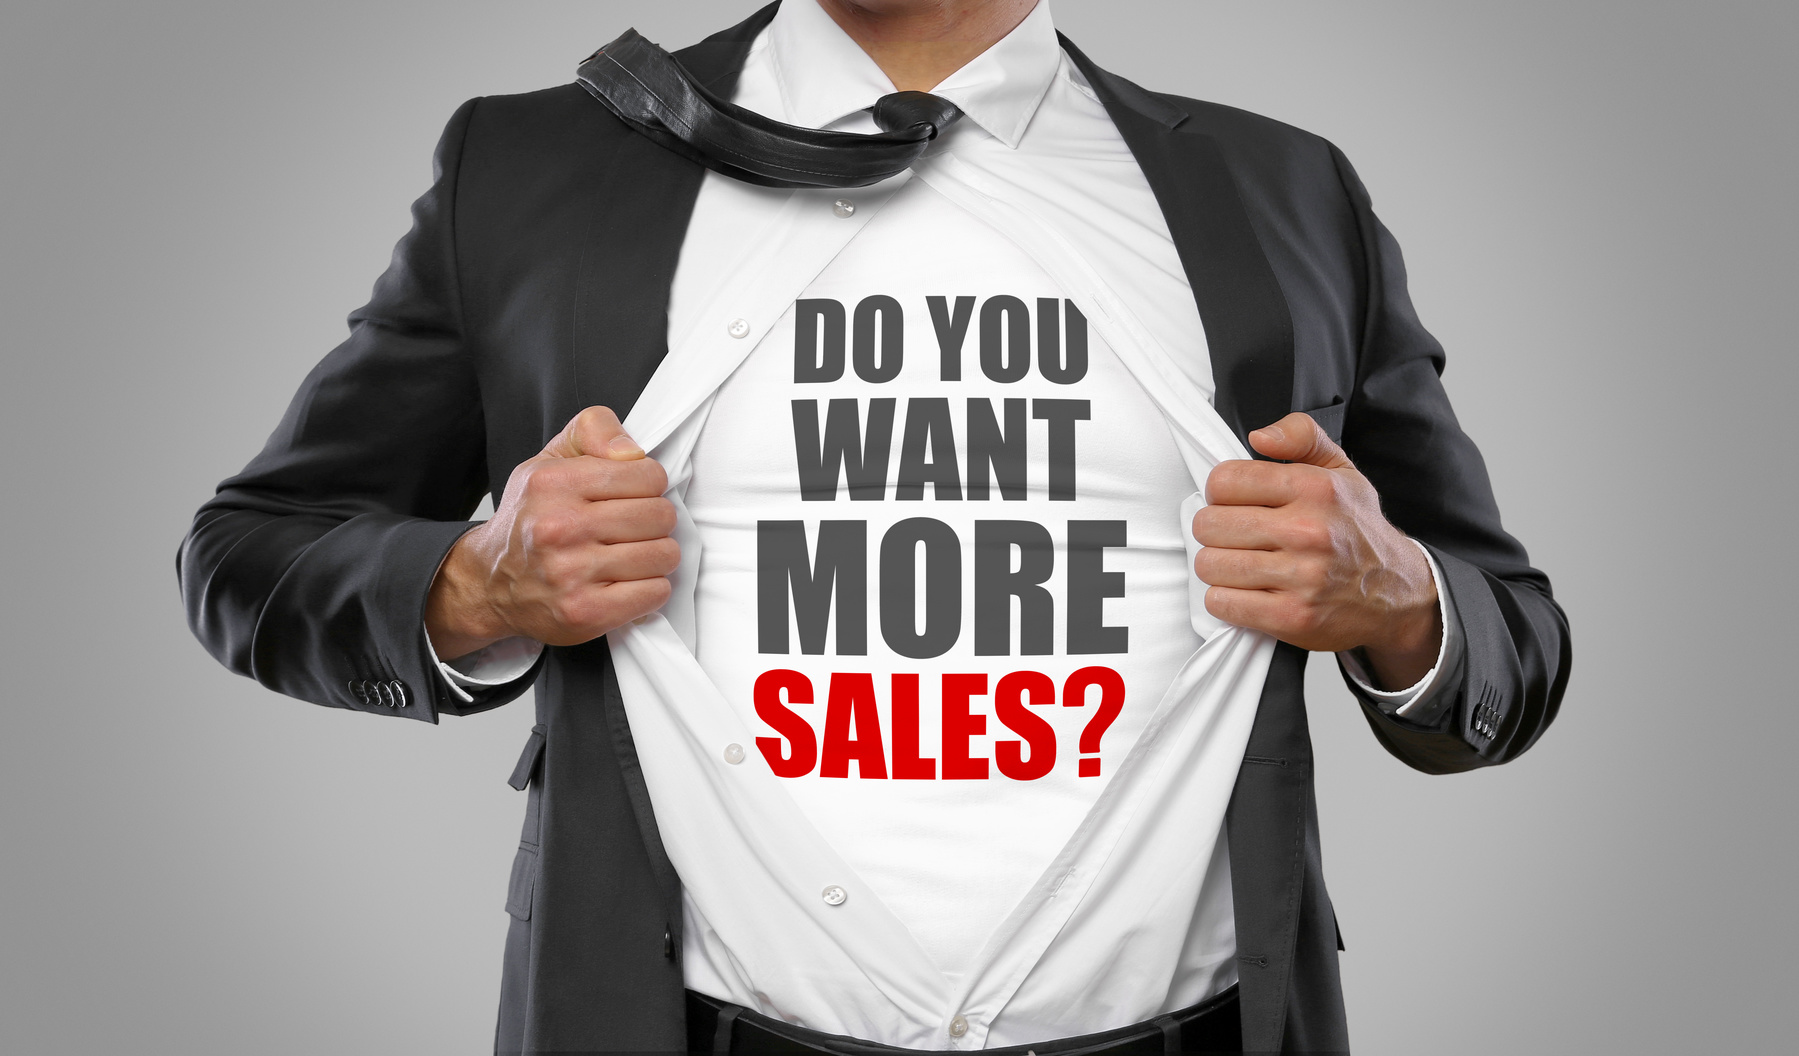 Do you want more sales? / man open shirt